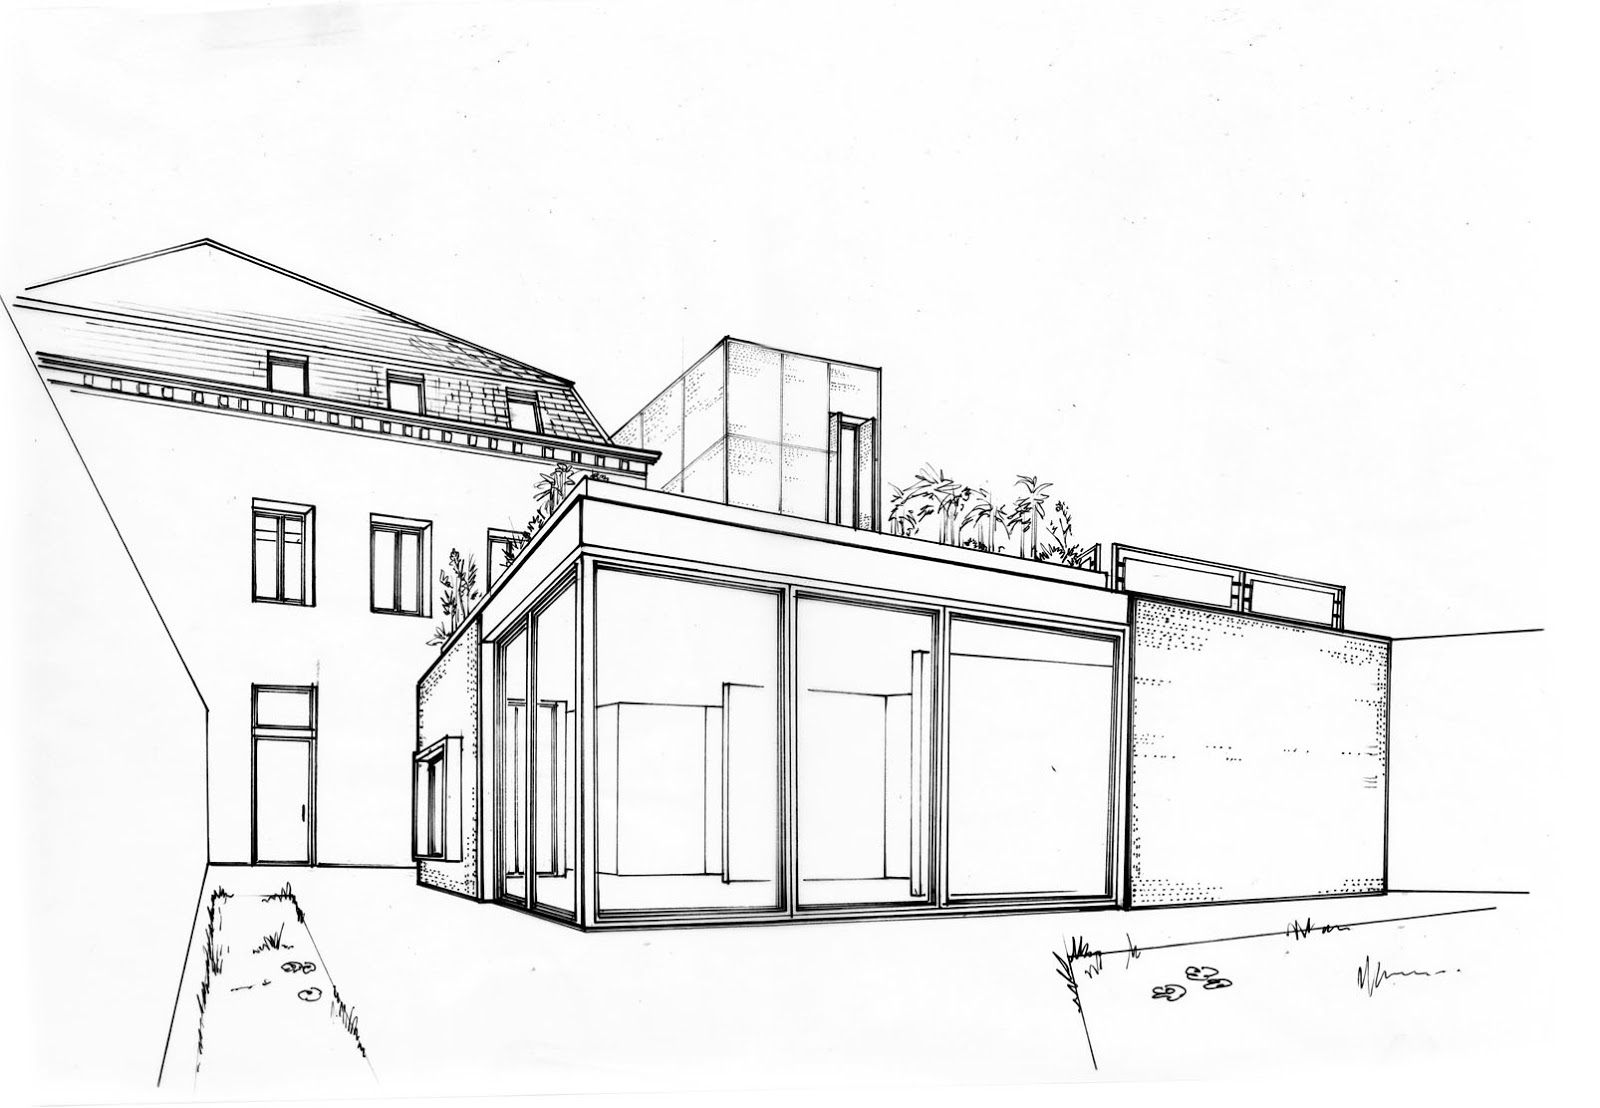 The B Amp W Animation Stories Architecture Drawing For Atelier 24